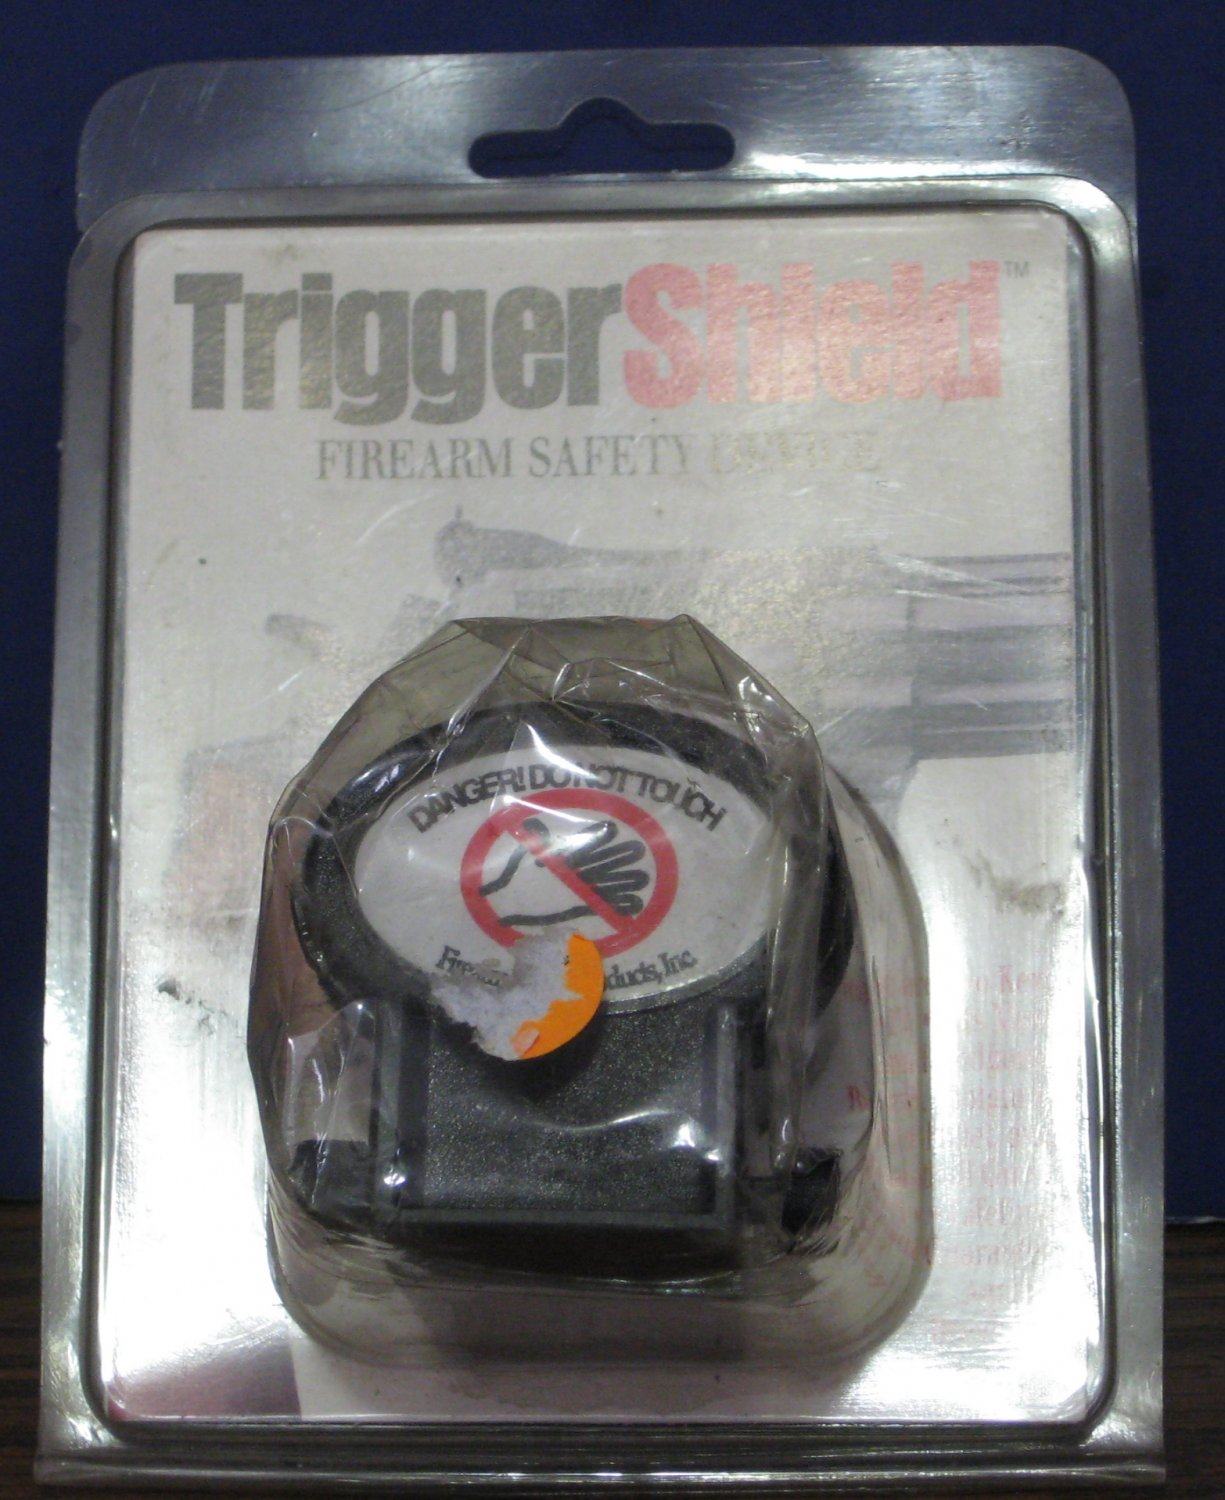 Trigger Shield Firearm Safety Device - Trigger Cover - New - TriggerShield